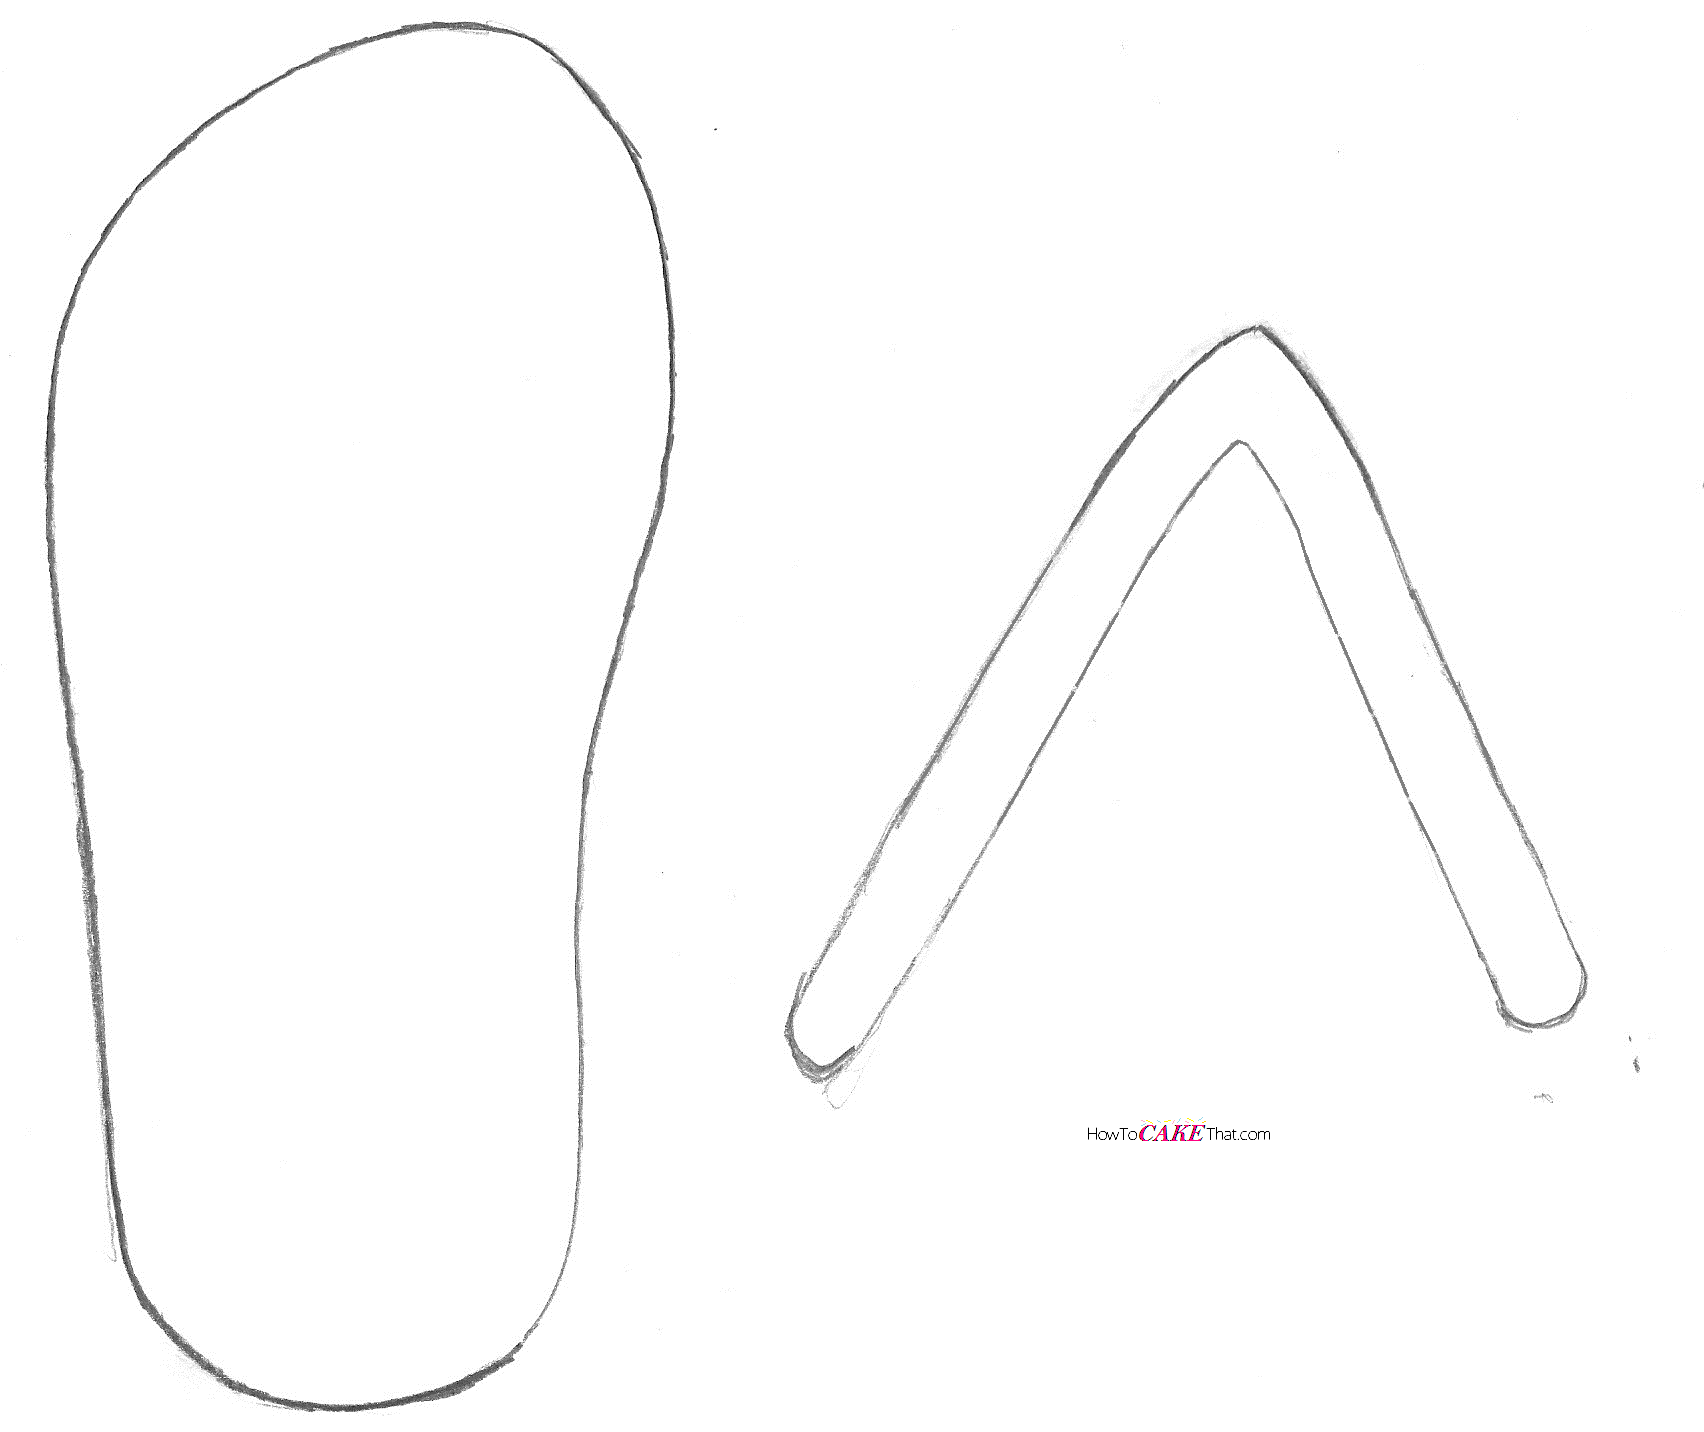 Flip flop pattern. Use the printable outline for crafts, creating